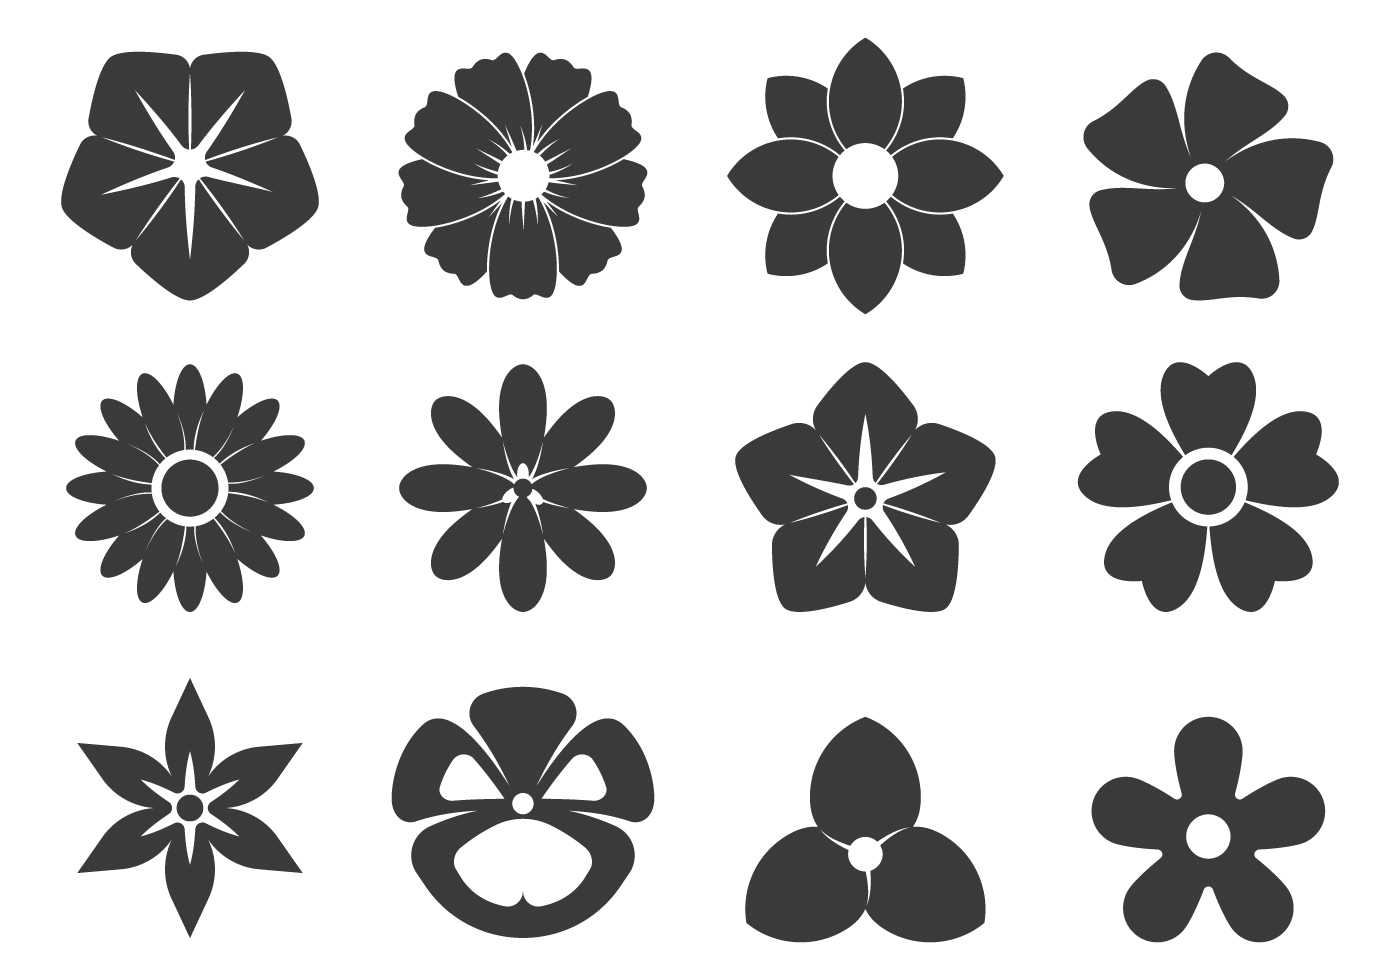 Black Flower Free Vector Art 3 033 Free Downloads